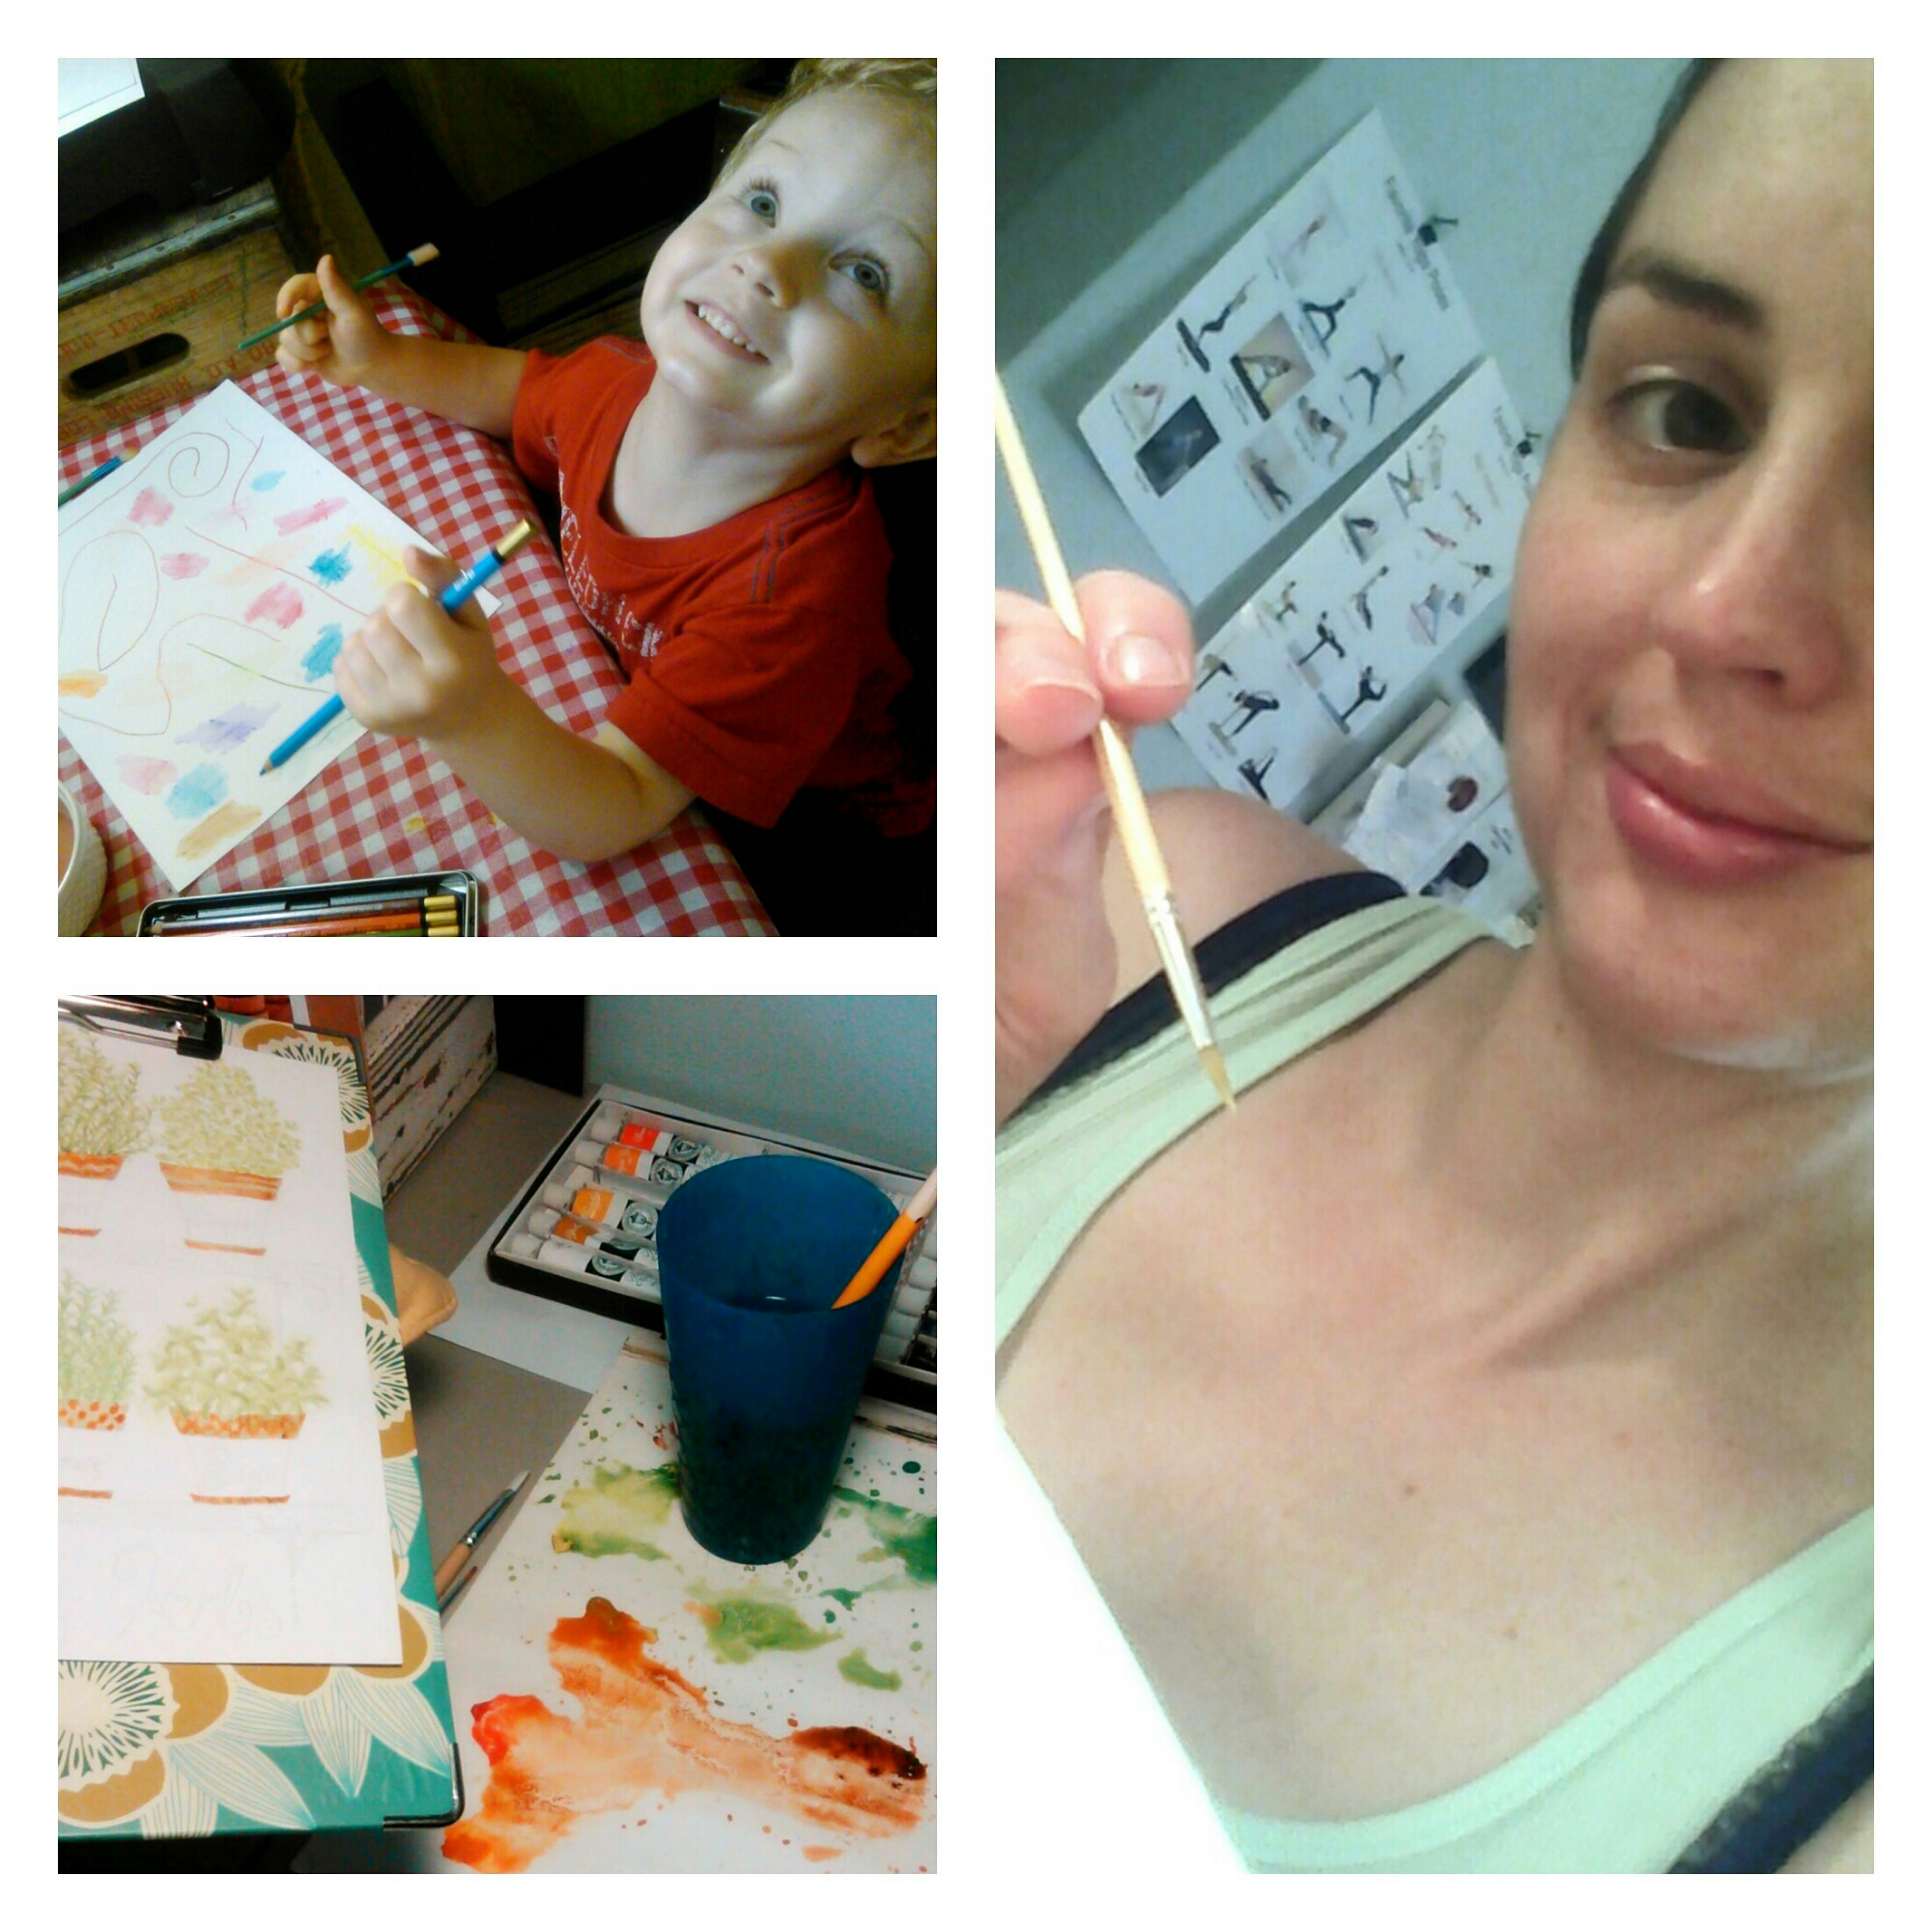 Kid Friendly Art Studio by Shalom Schultz Designs. Children's art corner. Preschool art. My son painting with me.